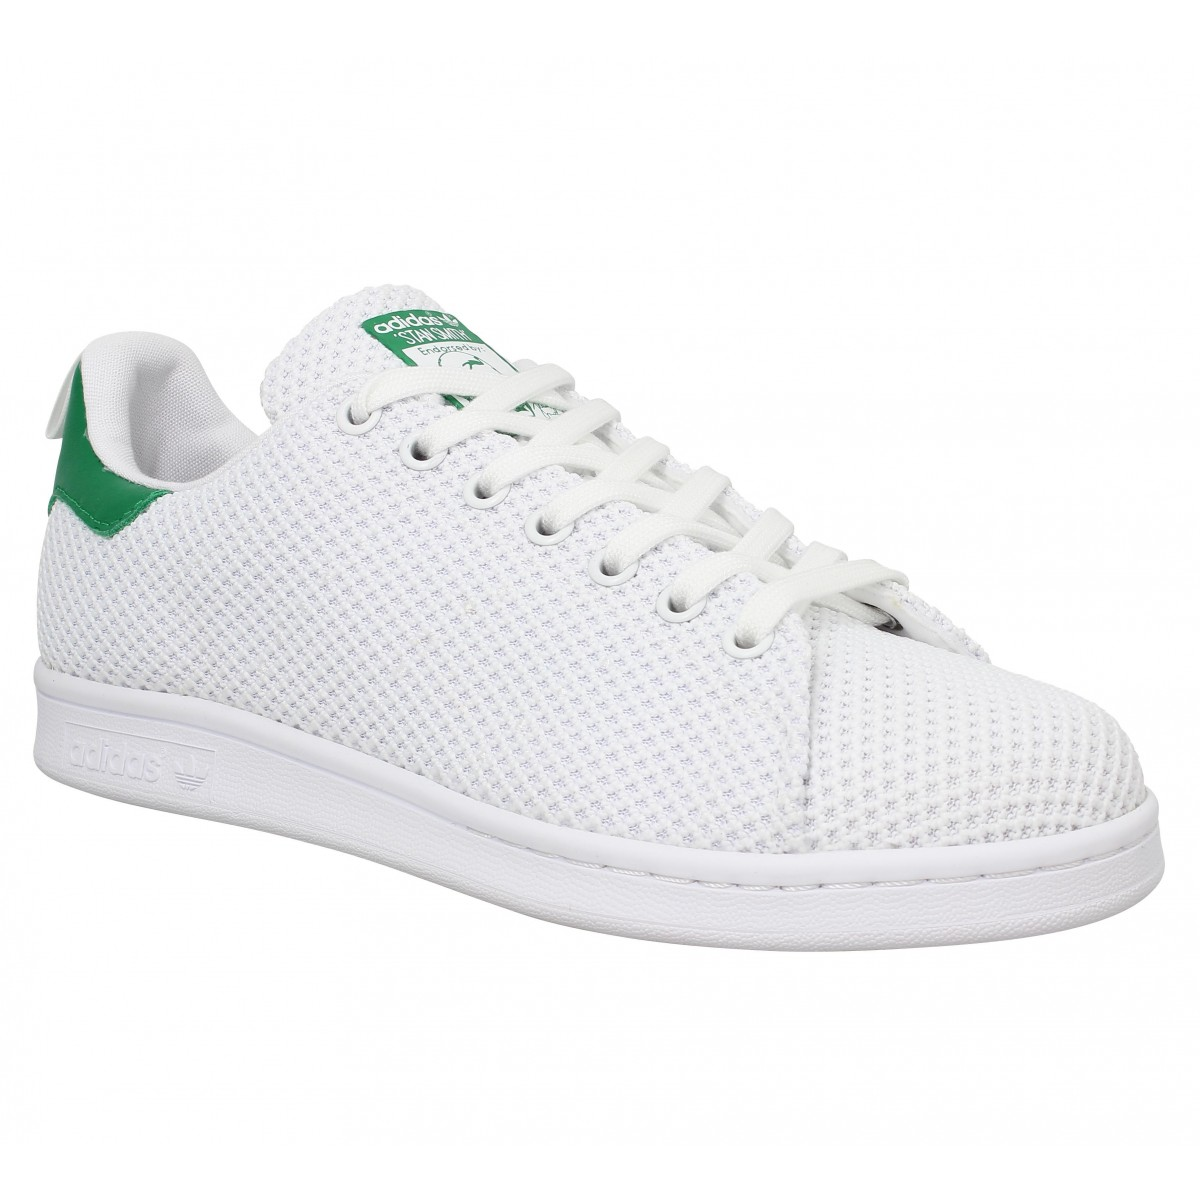 info for 38ffb b4784 Baskets ADIDAS Stan Smith toile Blanc Vert